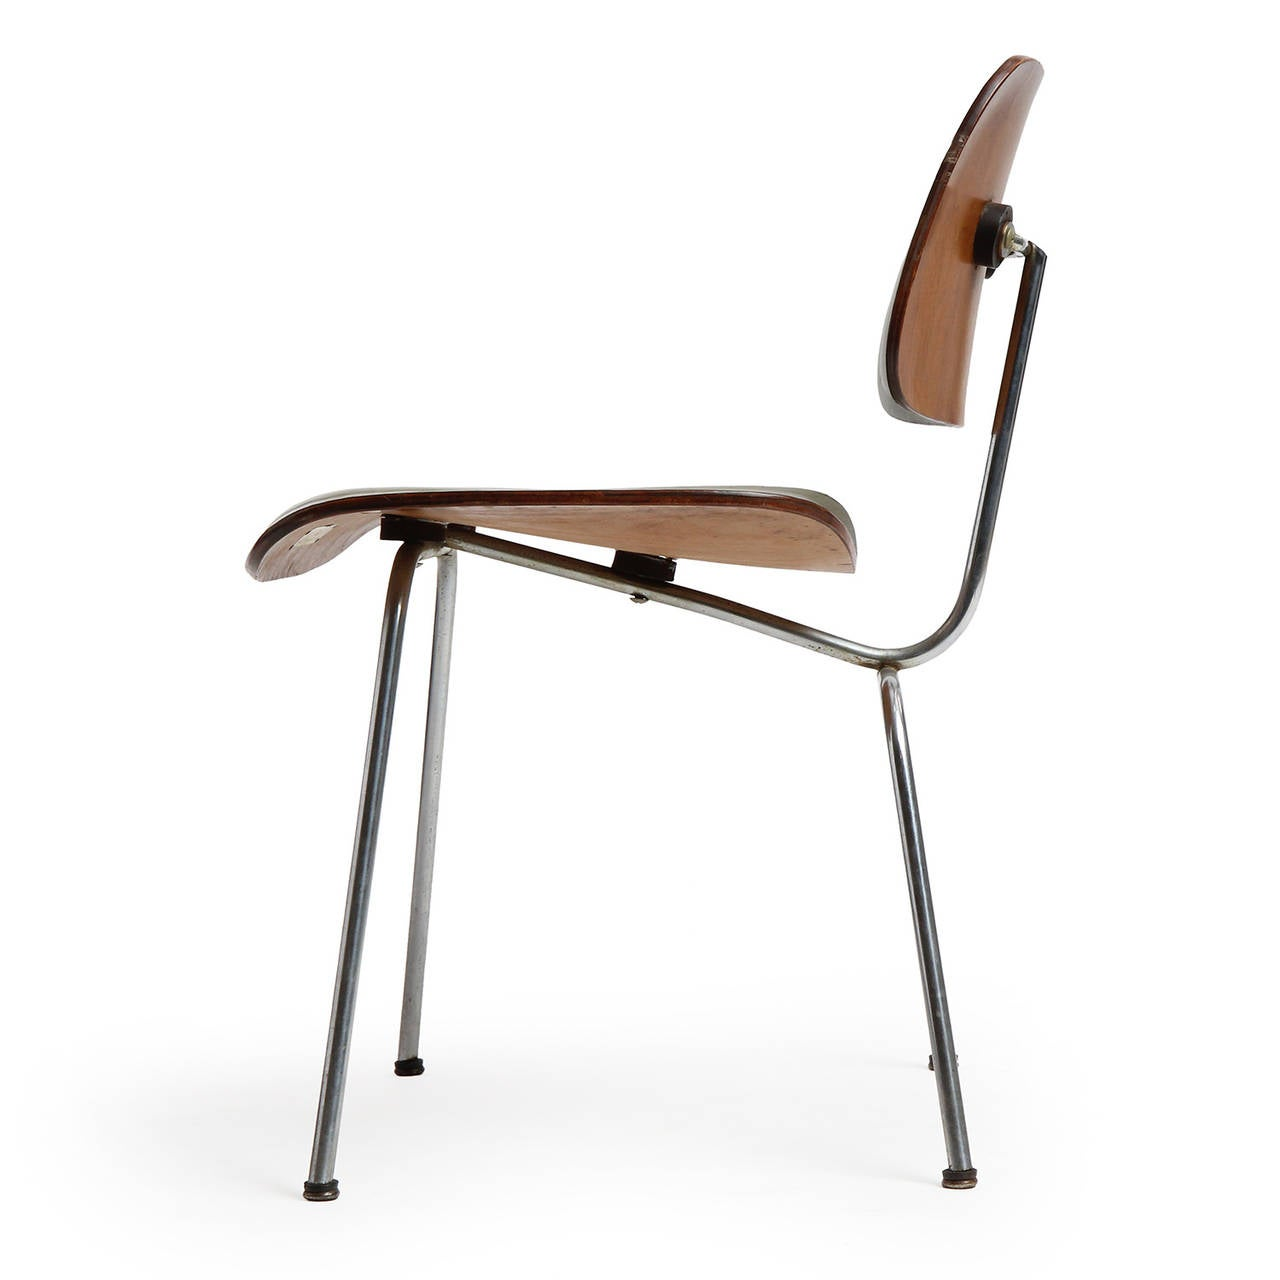 Leather dcm chair by charles and ray eames at 1stdibs for Leather eames dining chair